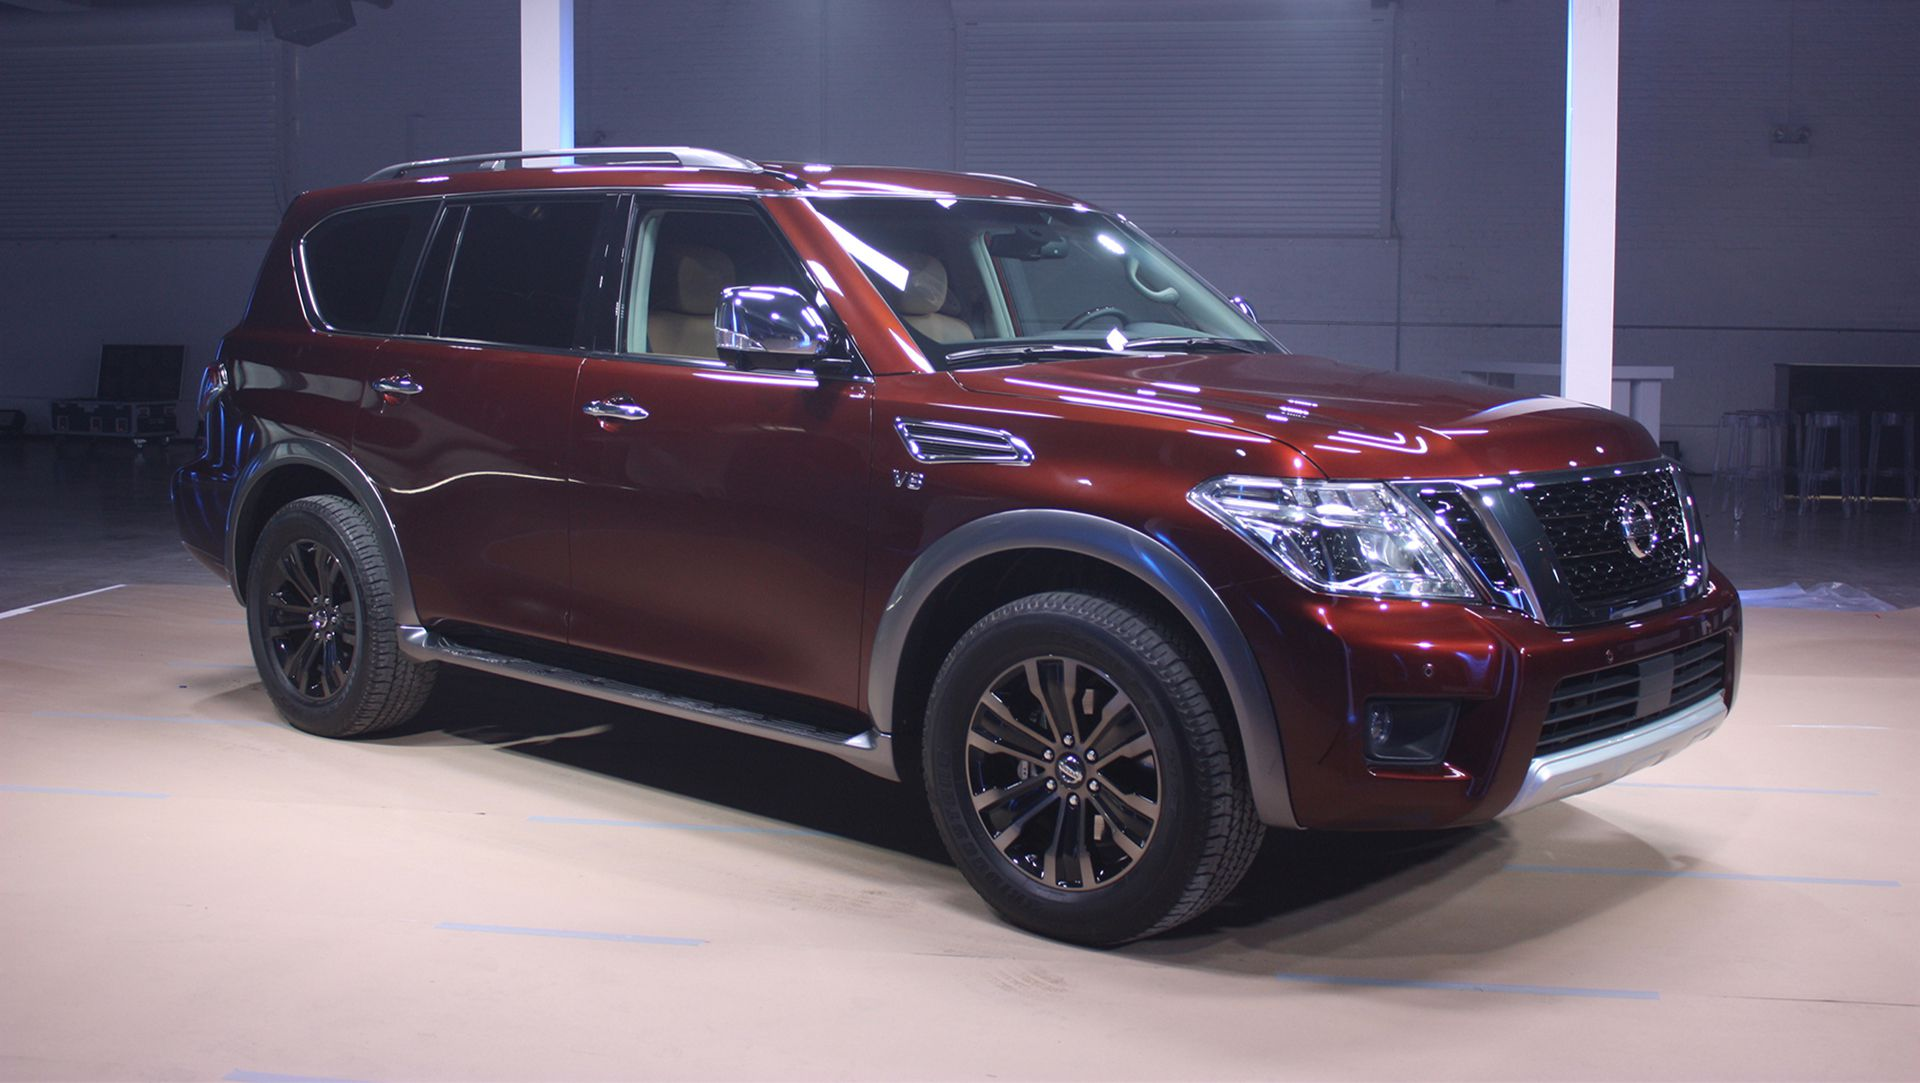 mankato summer overview nissan in of flagship armada motors s february new arrive due generation blog suv to htm